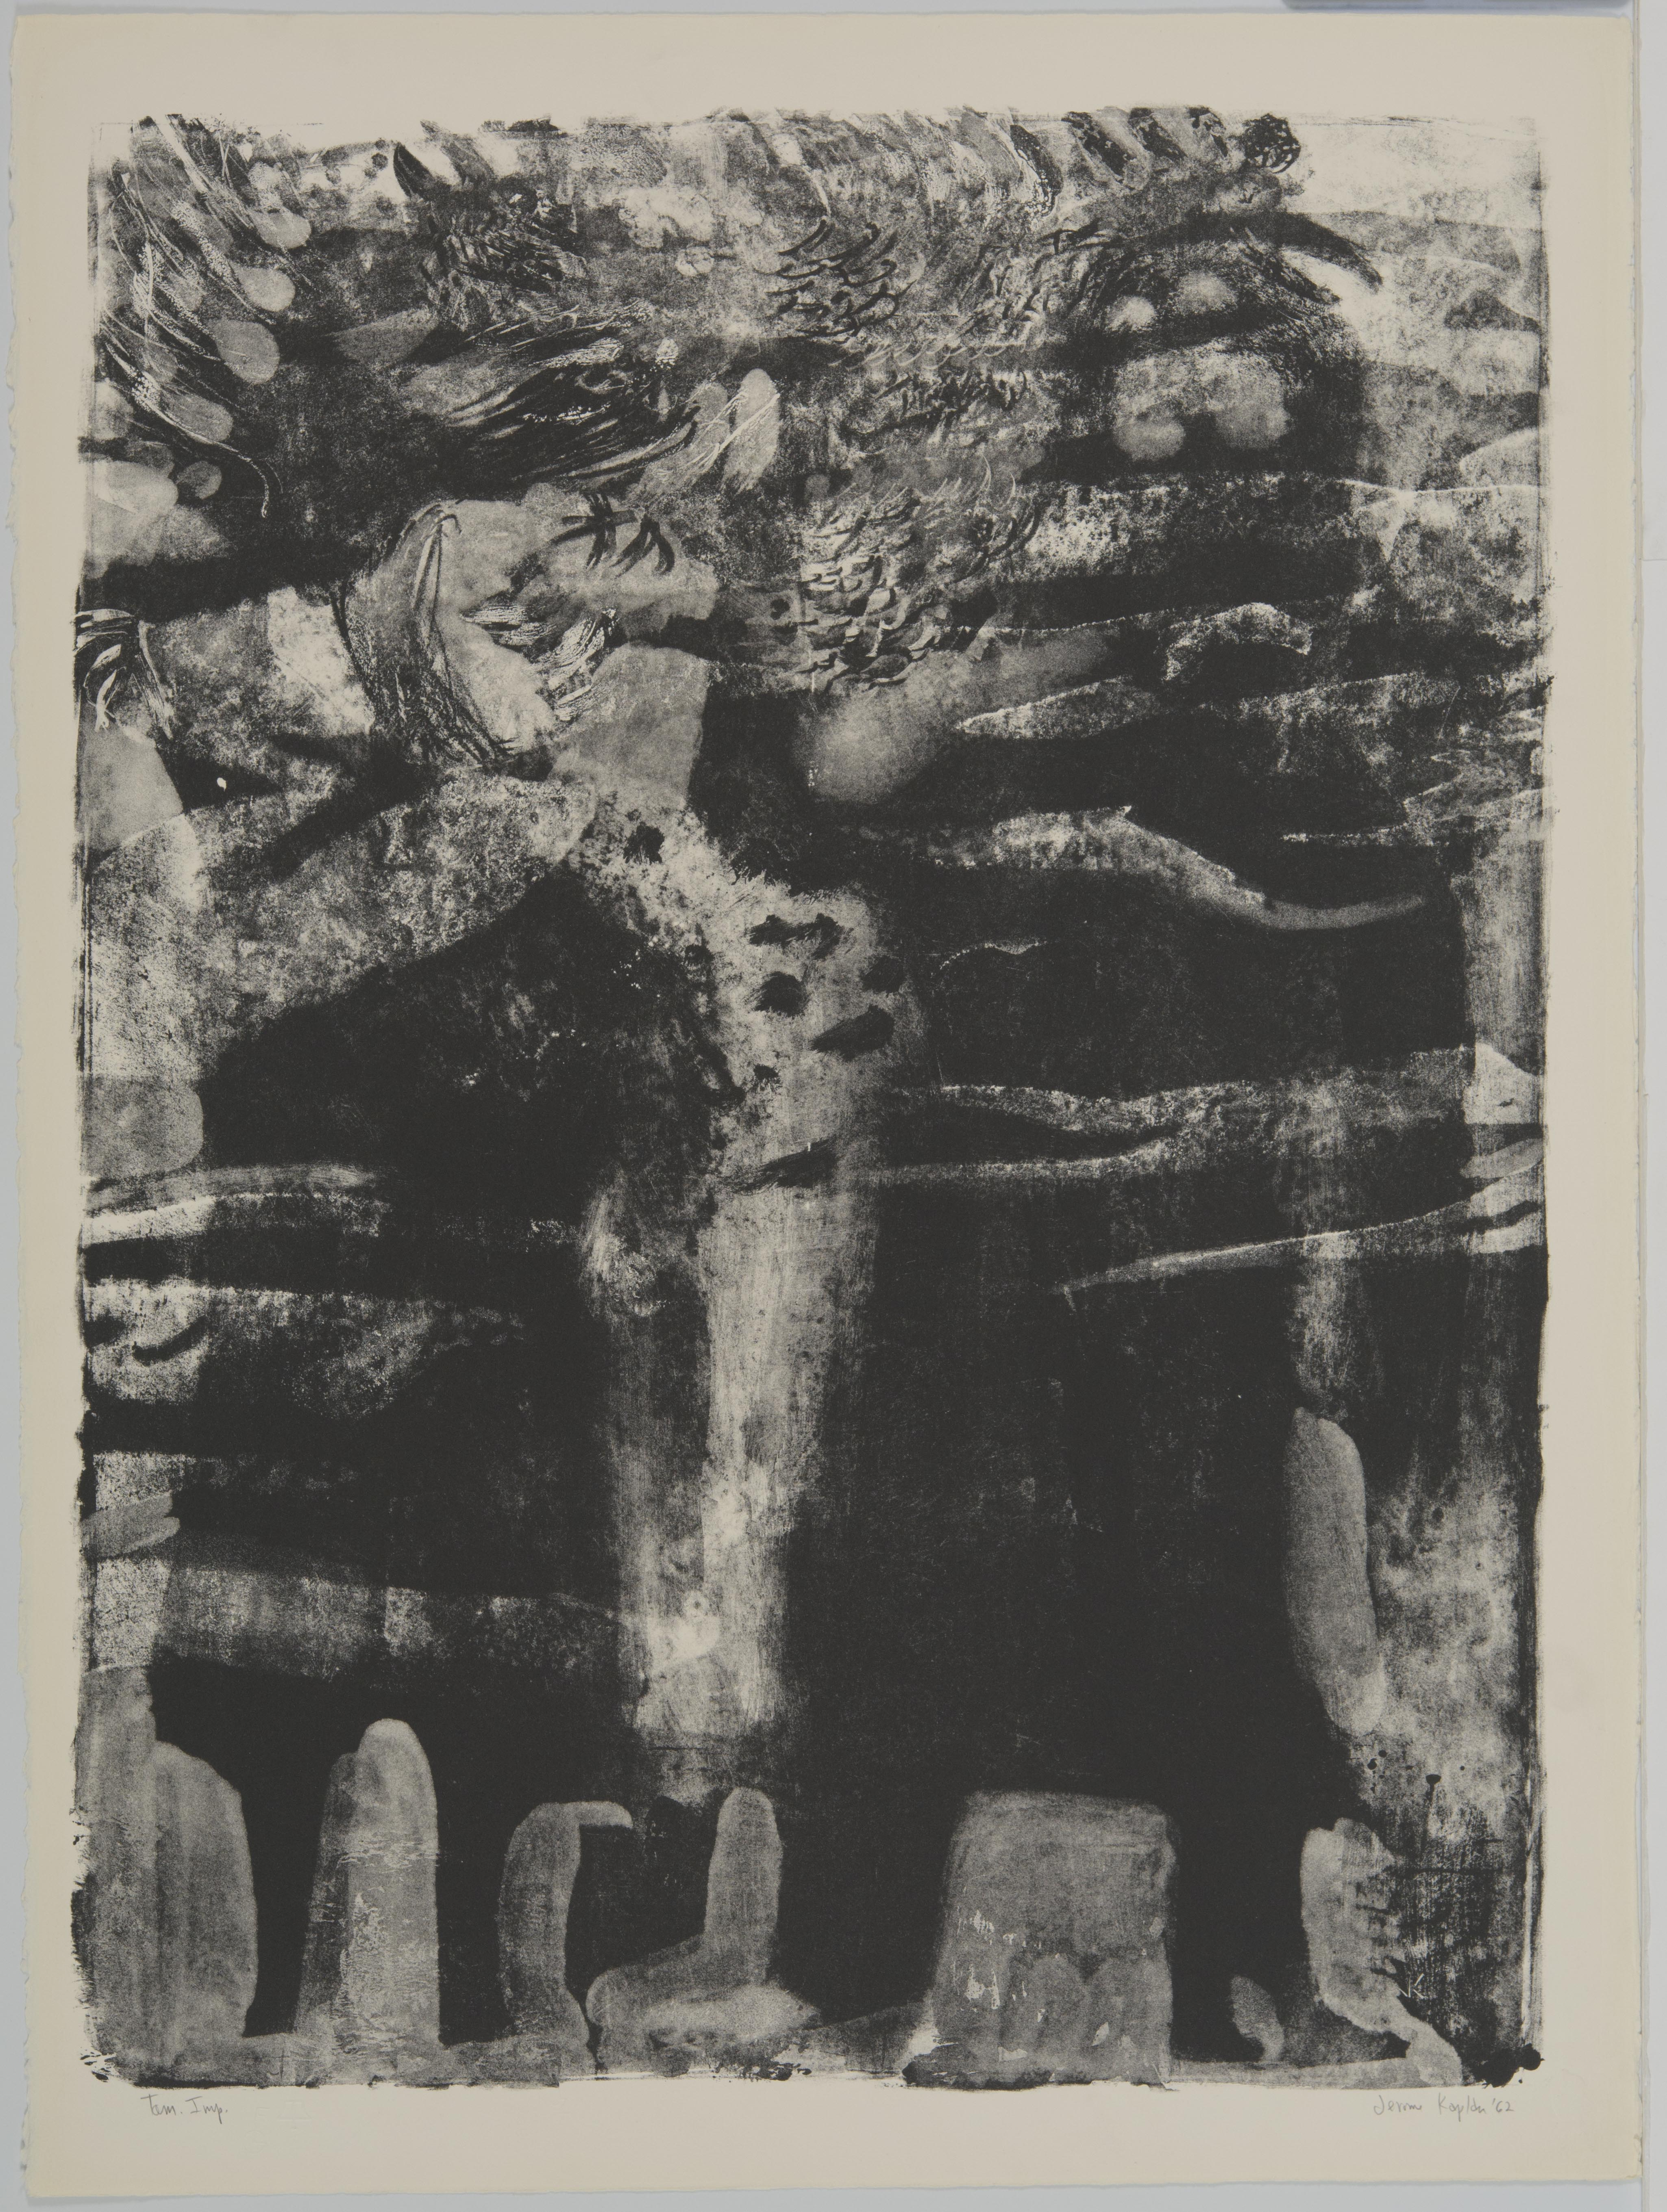 Jerome Kaplan, Kapparah, March 6-9, 1962